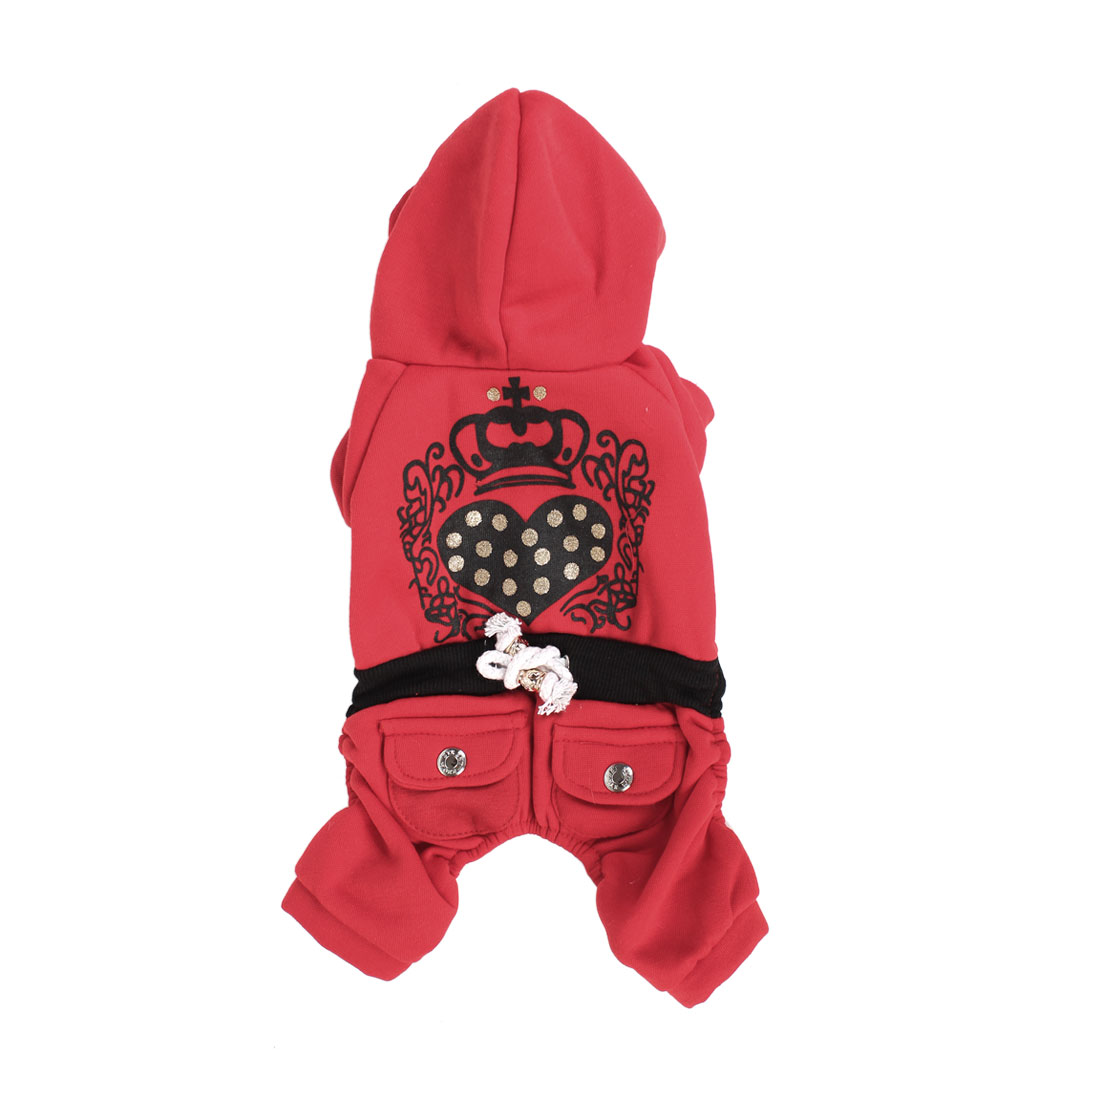 Winter Warm Sleeved Hoodie Pet Dog Doggy Apparel Coat Clothes Red Black Size S